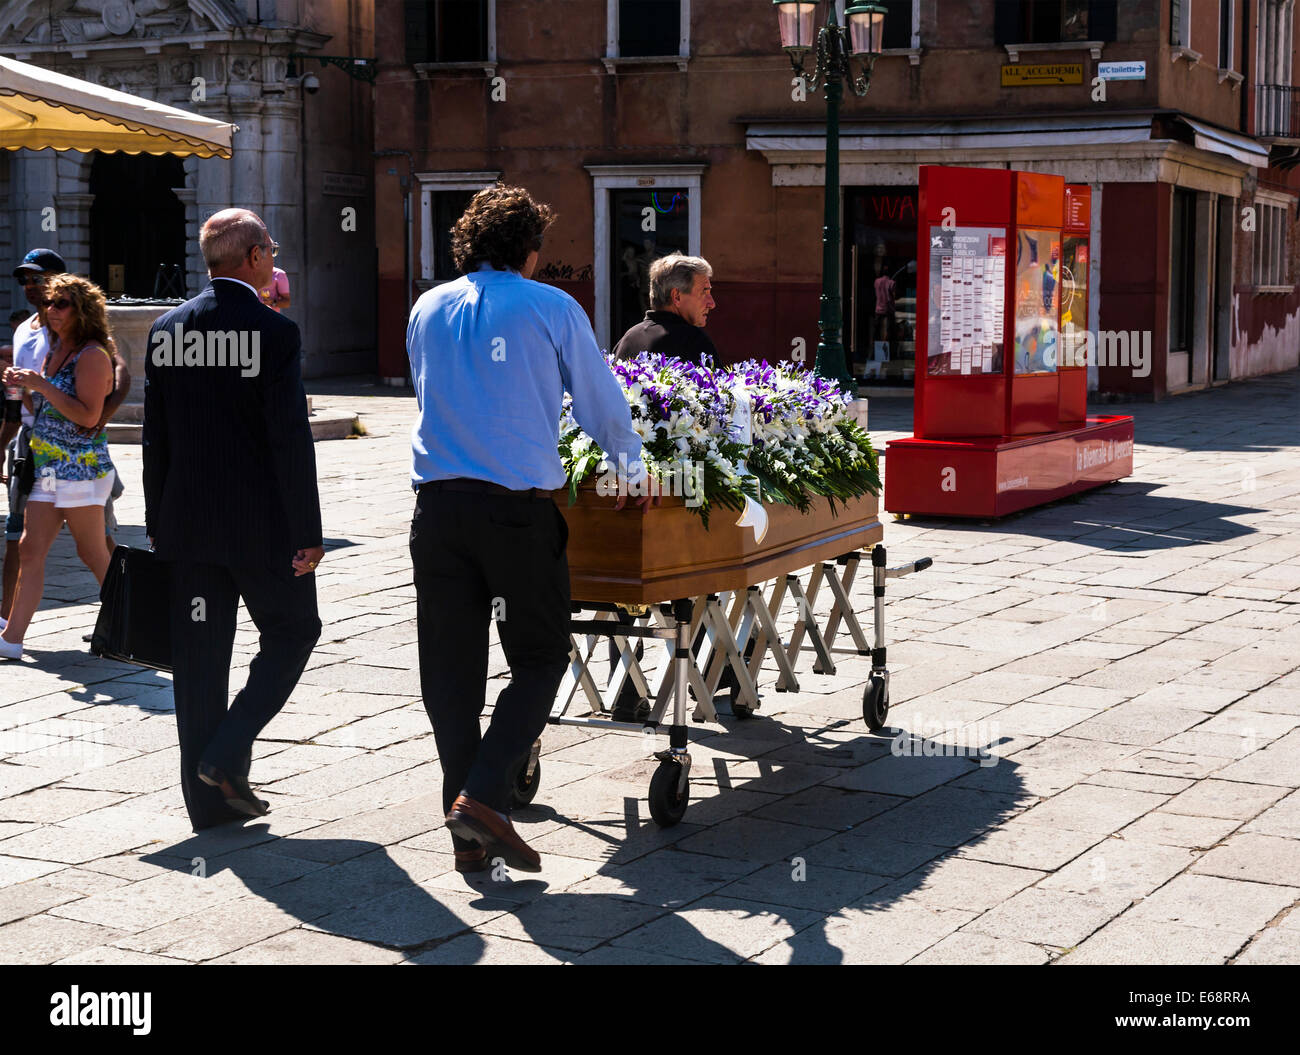 Funeral in Venice  with the coffin being pushed through the streets on a trolley, Veneto Italy. - Stock Image